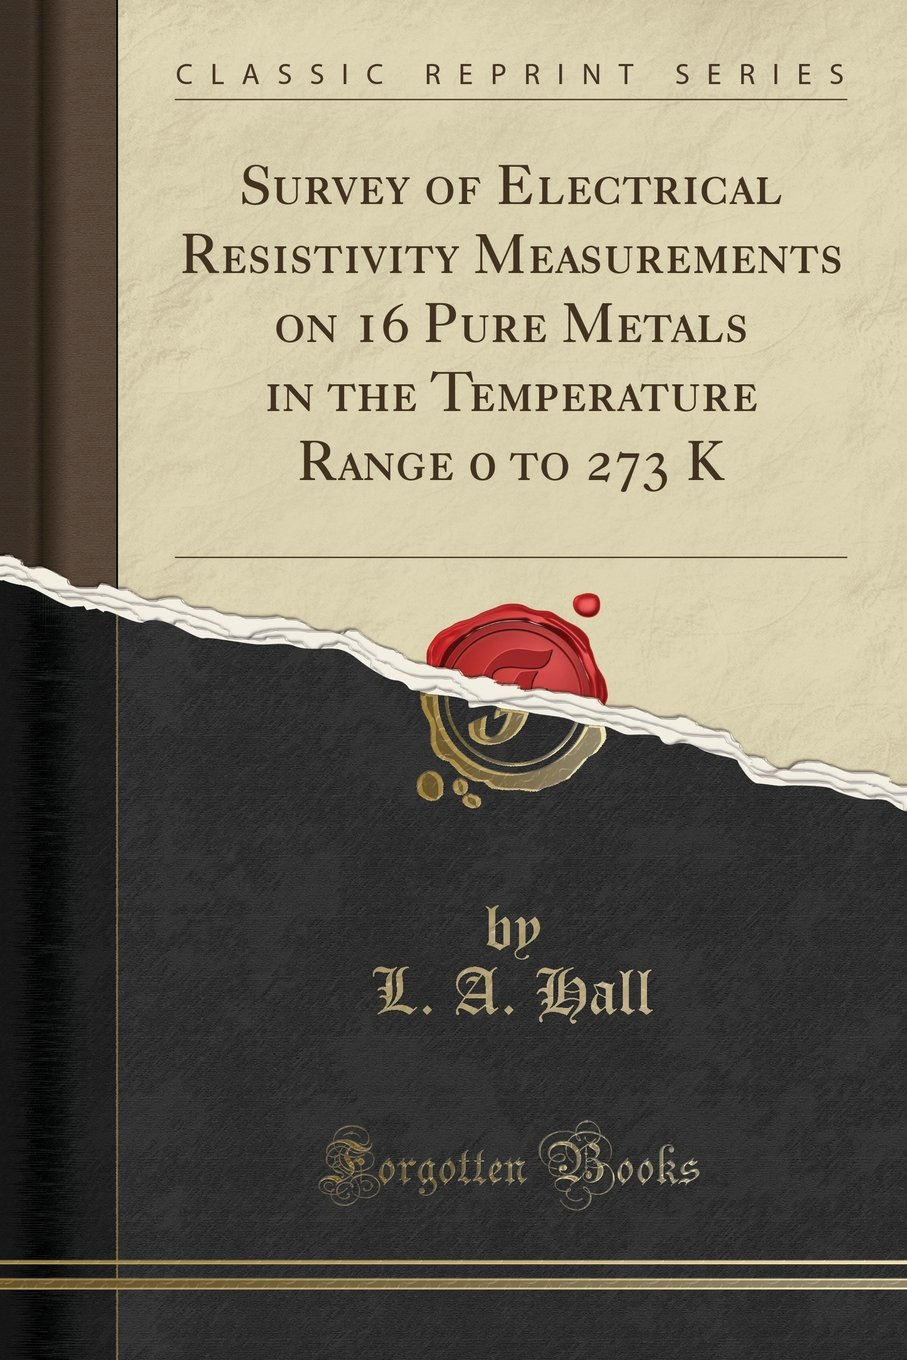 Survey of Electrical Resistivity Measurements on 16 Pure Metals in the Temperature Range 0 to 273 K (Classic Reprint) ebook